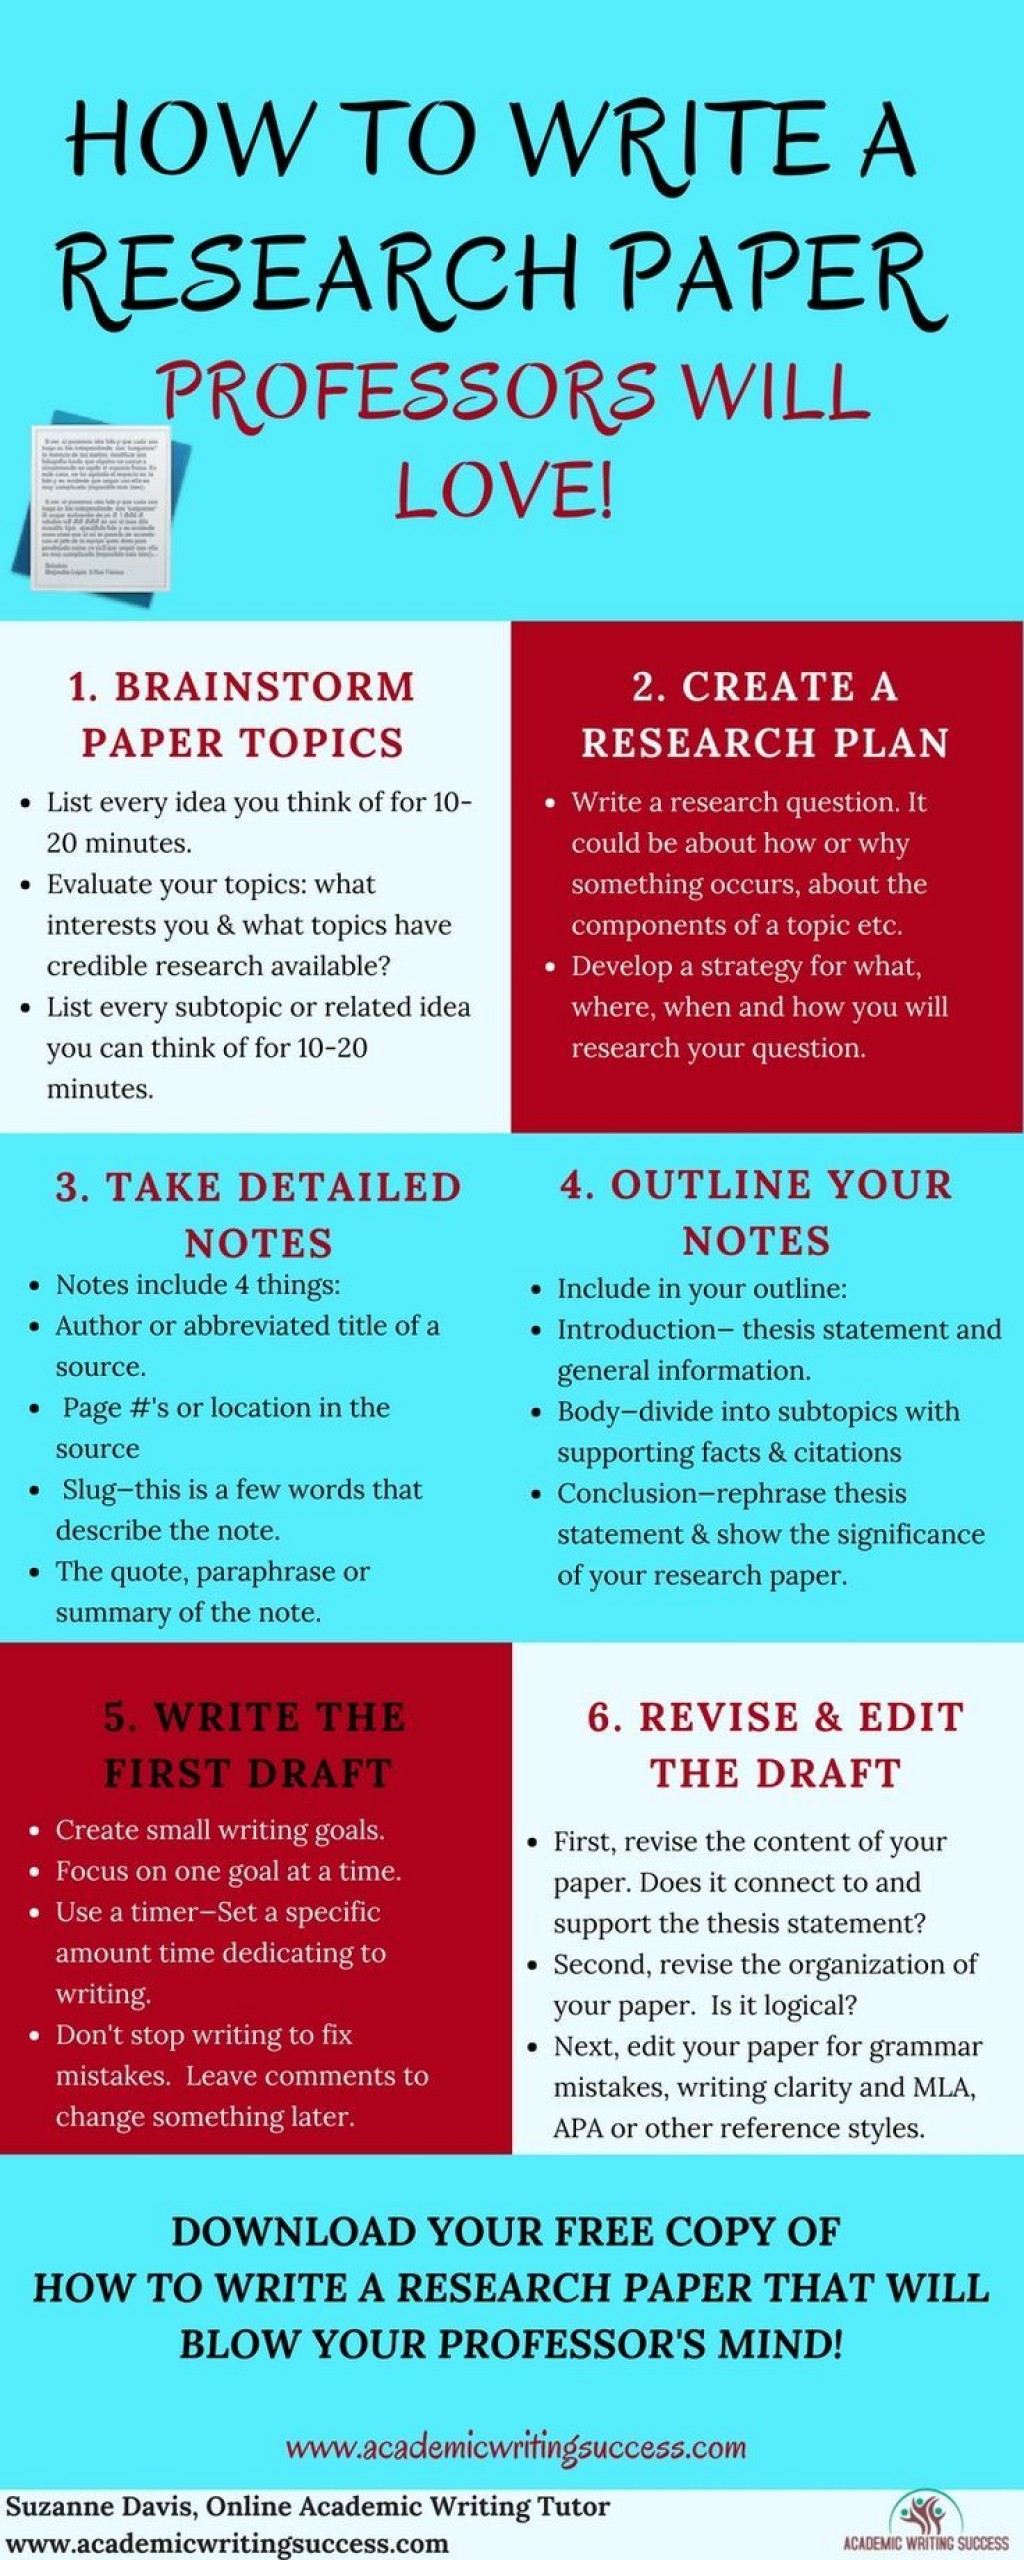 006 Research Paper Tips For Papers Wondrous Good Effective Writing Large